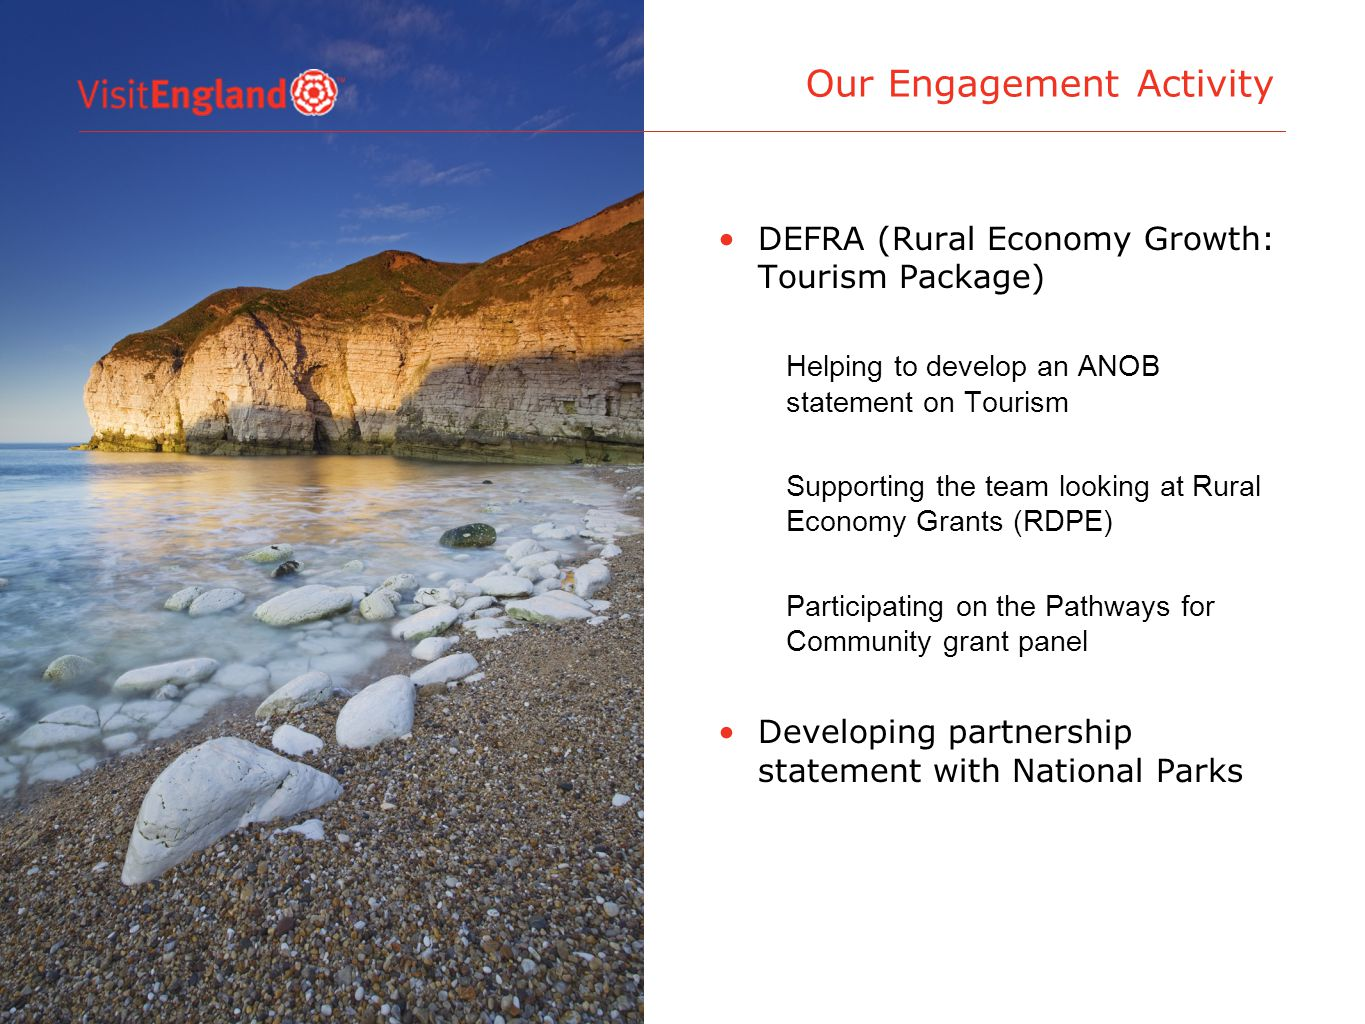 DEFRA (Rural Economy Growth: Tourism Package) Helping to develop an ANOB statement on Tourism Supporting the team looking at Rural Economy Grants (RDPE) Participating on the Pathways for Community grant panel Developing partnership statement with National Parks Our Engagement Activity